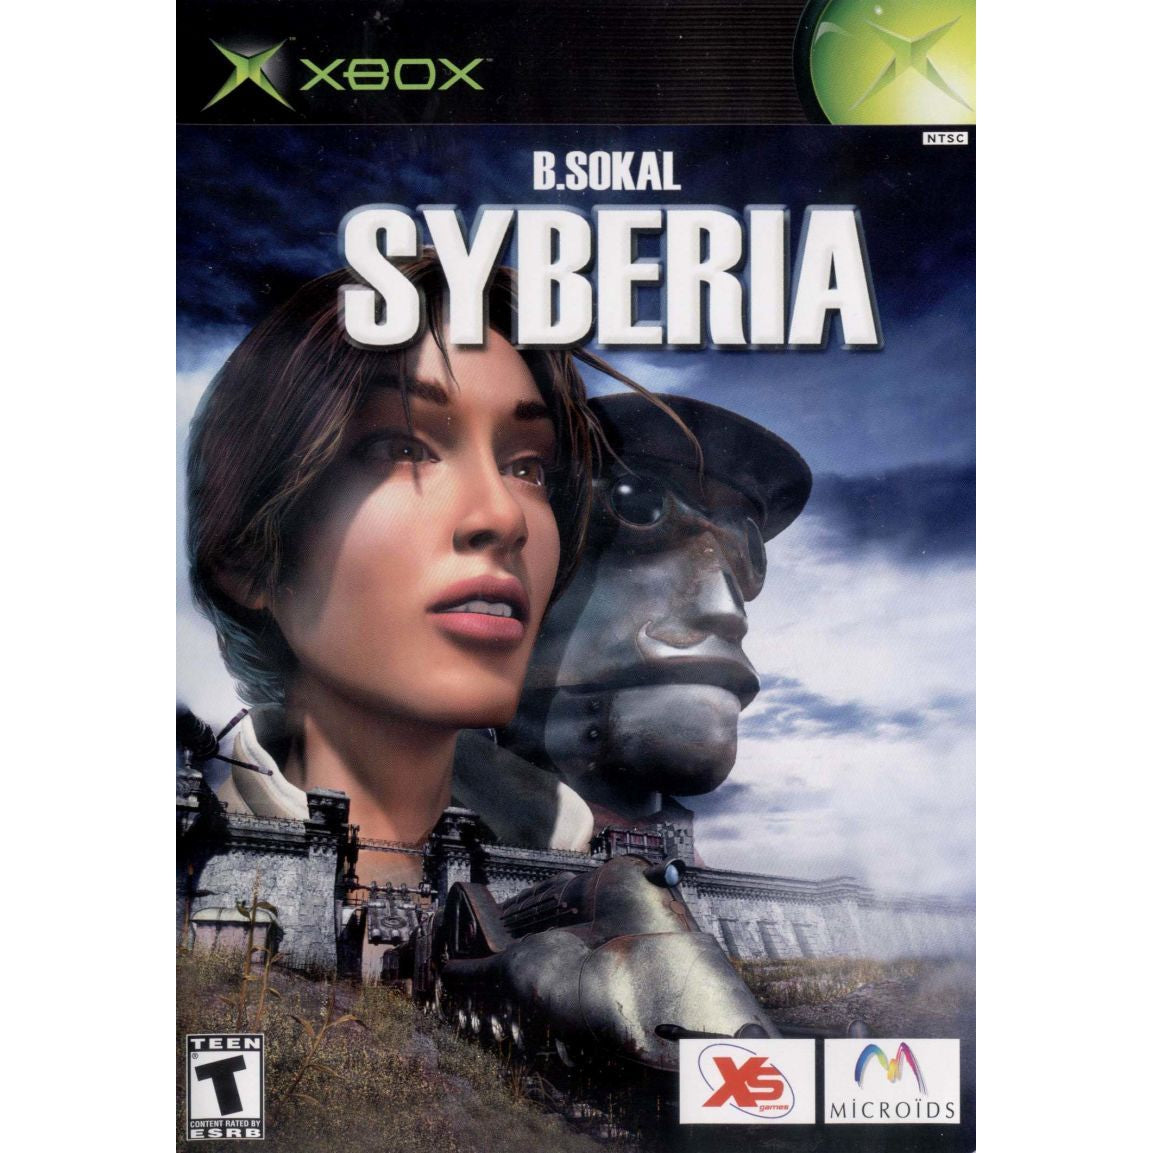 Syberia - Microsoft Xbox Game Complete - YourGamingShop.com - Buy, Sell, Trade Video Games Online. 120 Day Warranty. Satisfaction Guaranteed.